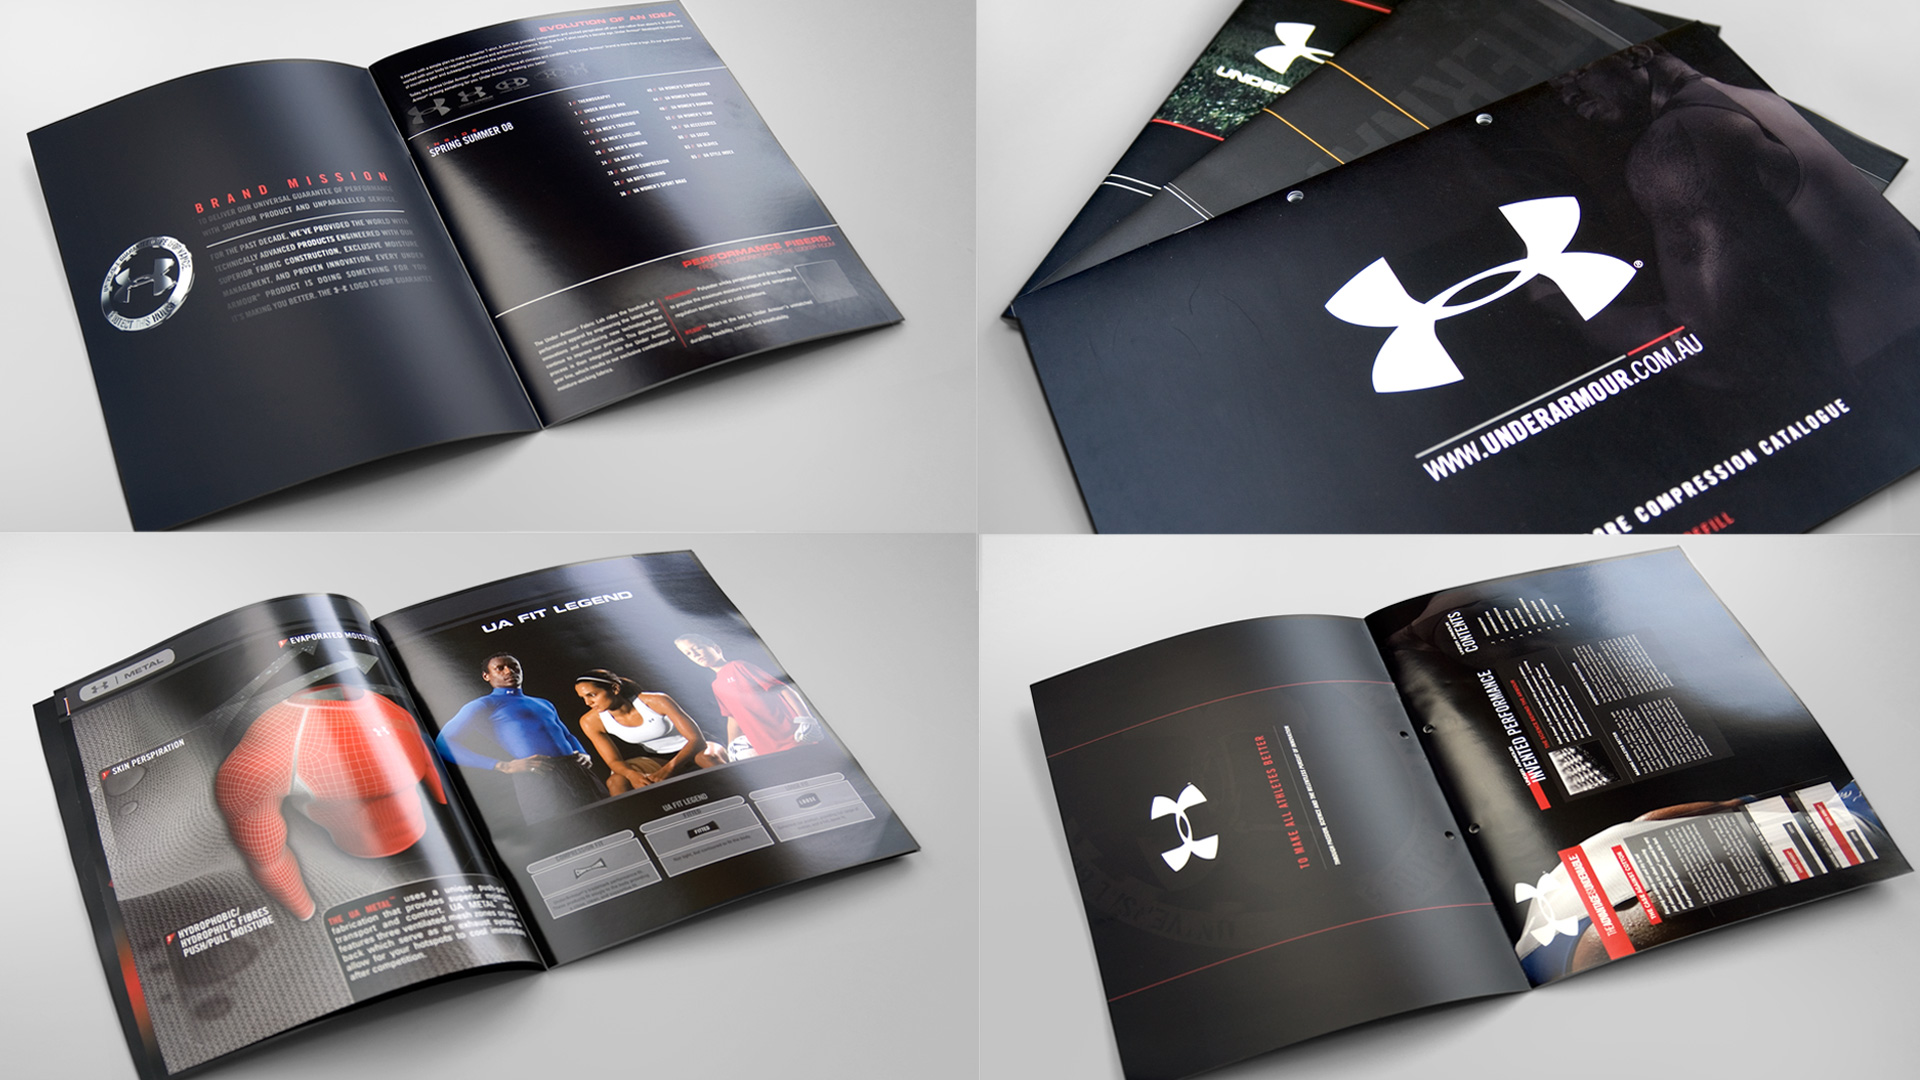 UNDER ARMOUR Publications Packaging Print Environmental Mlb Design